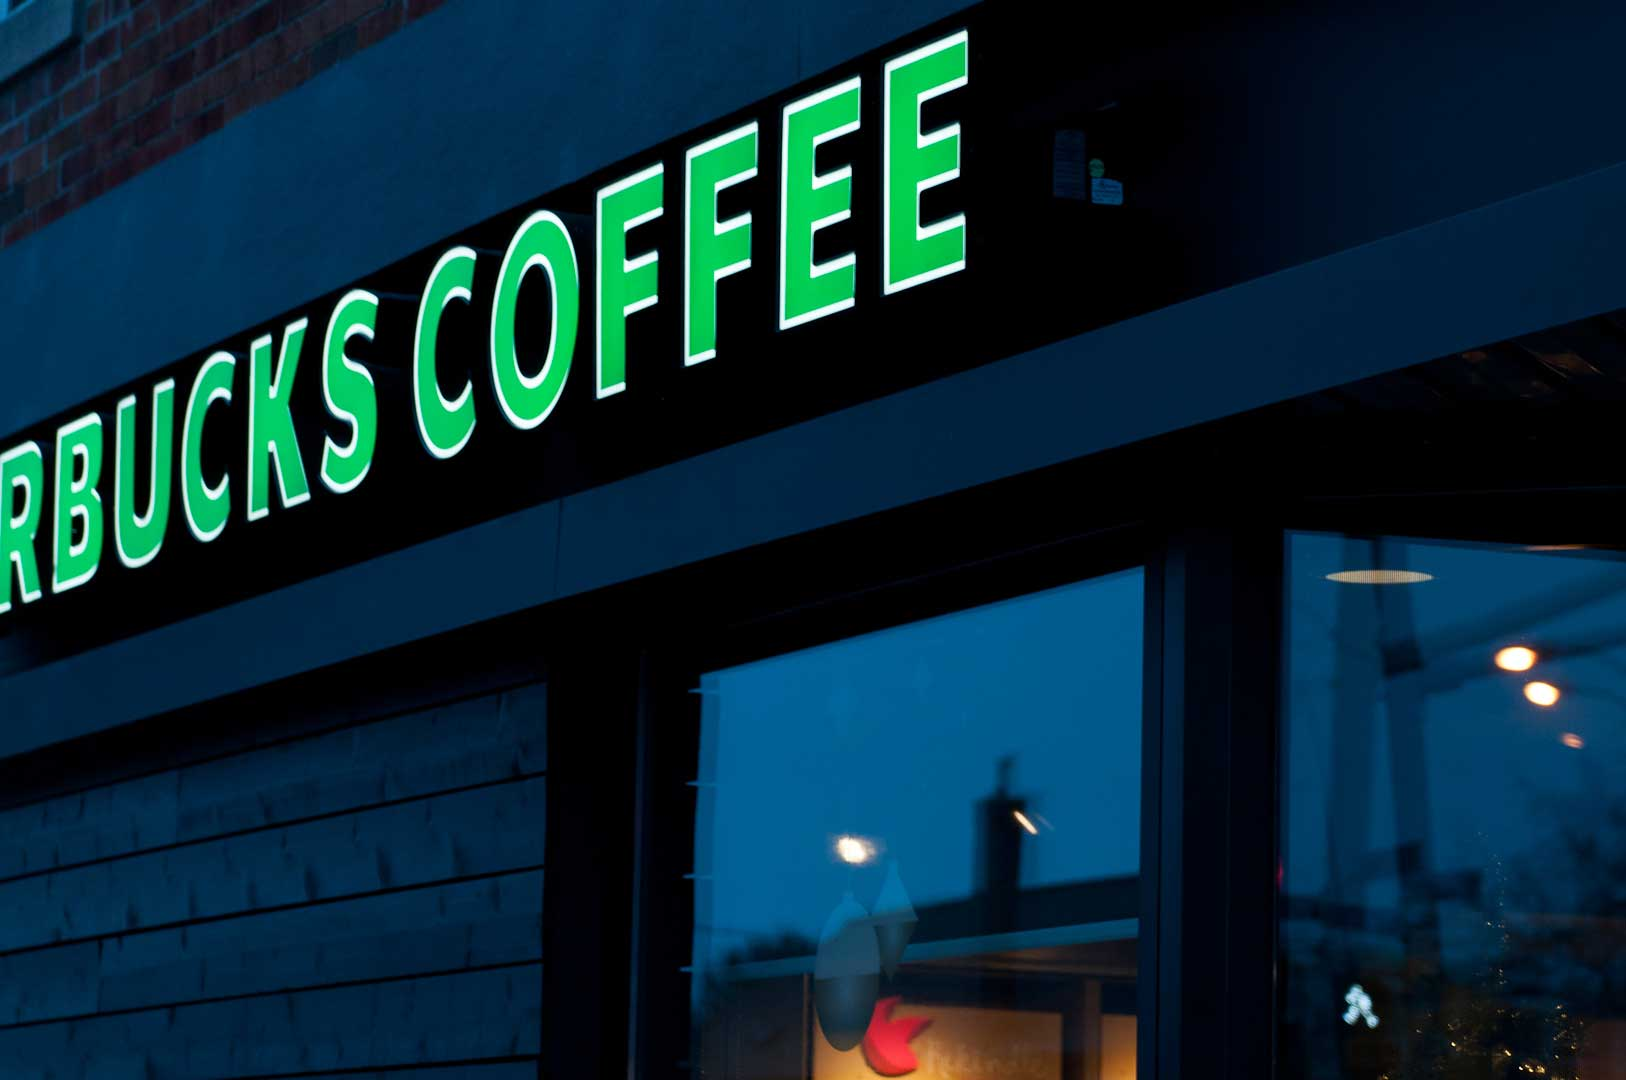 Dark Starbucks Sign Showing Metal Work by Explore1.ca